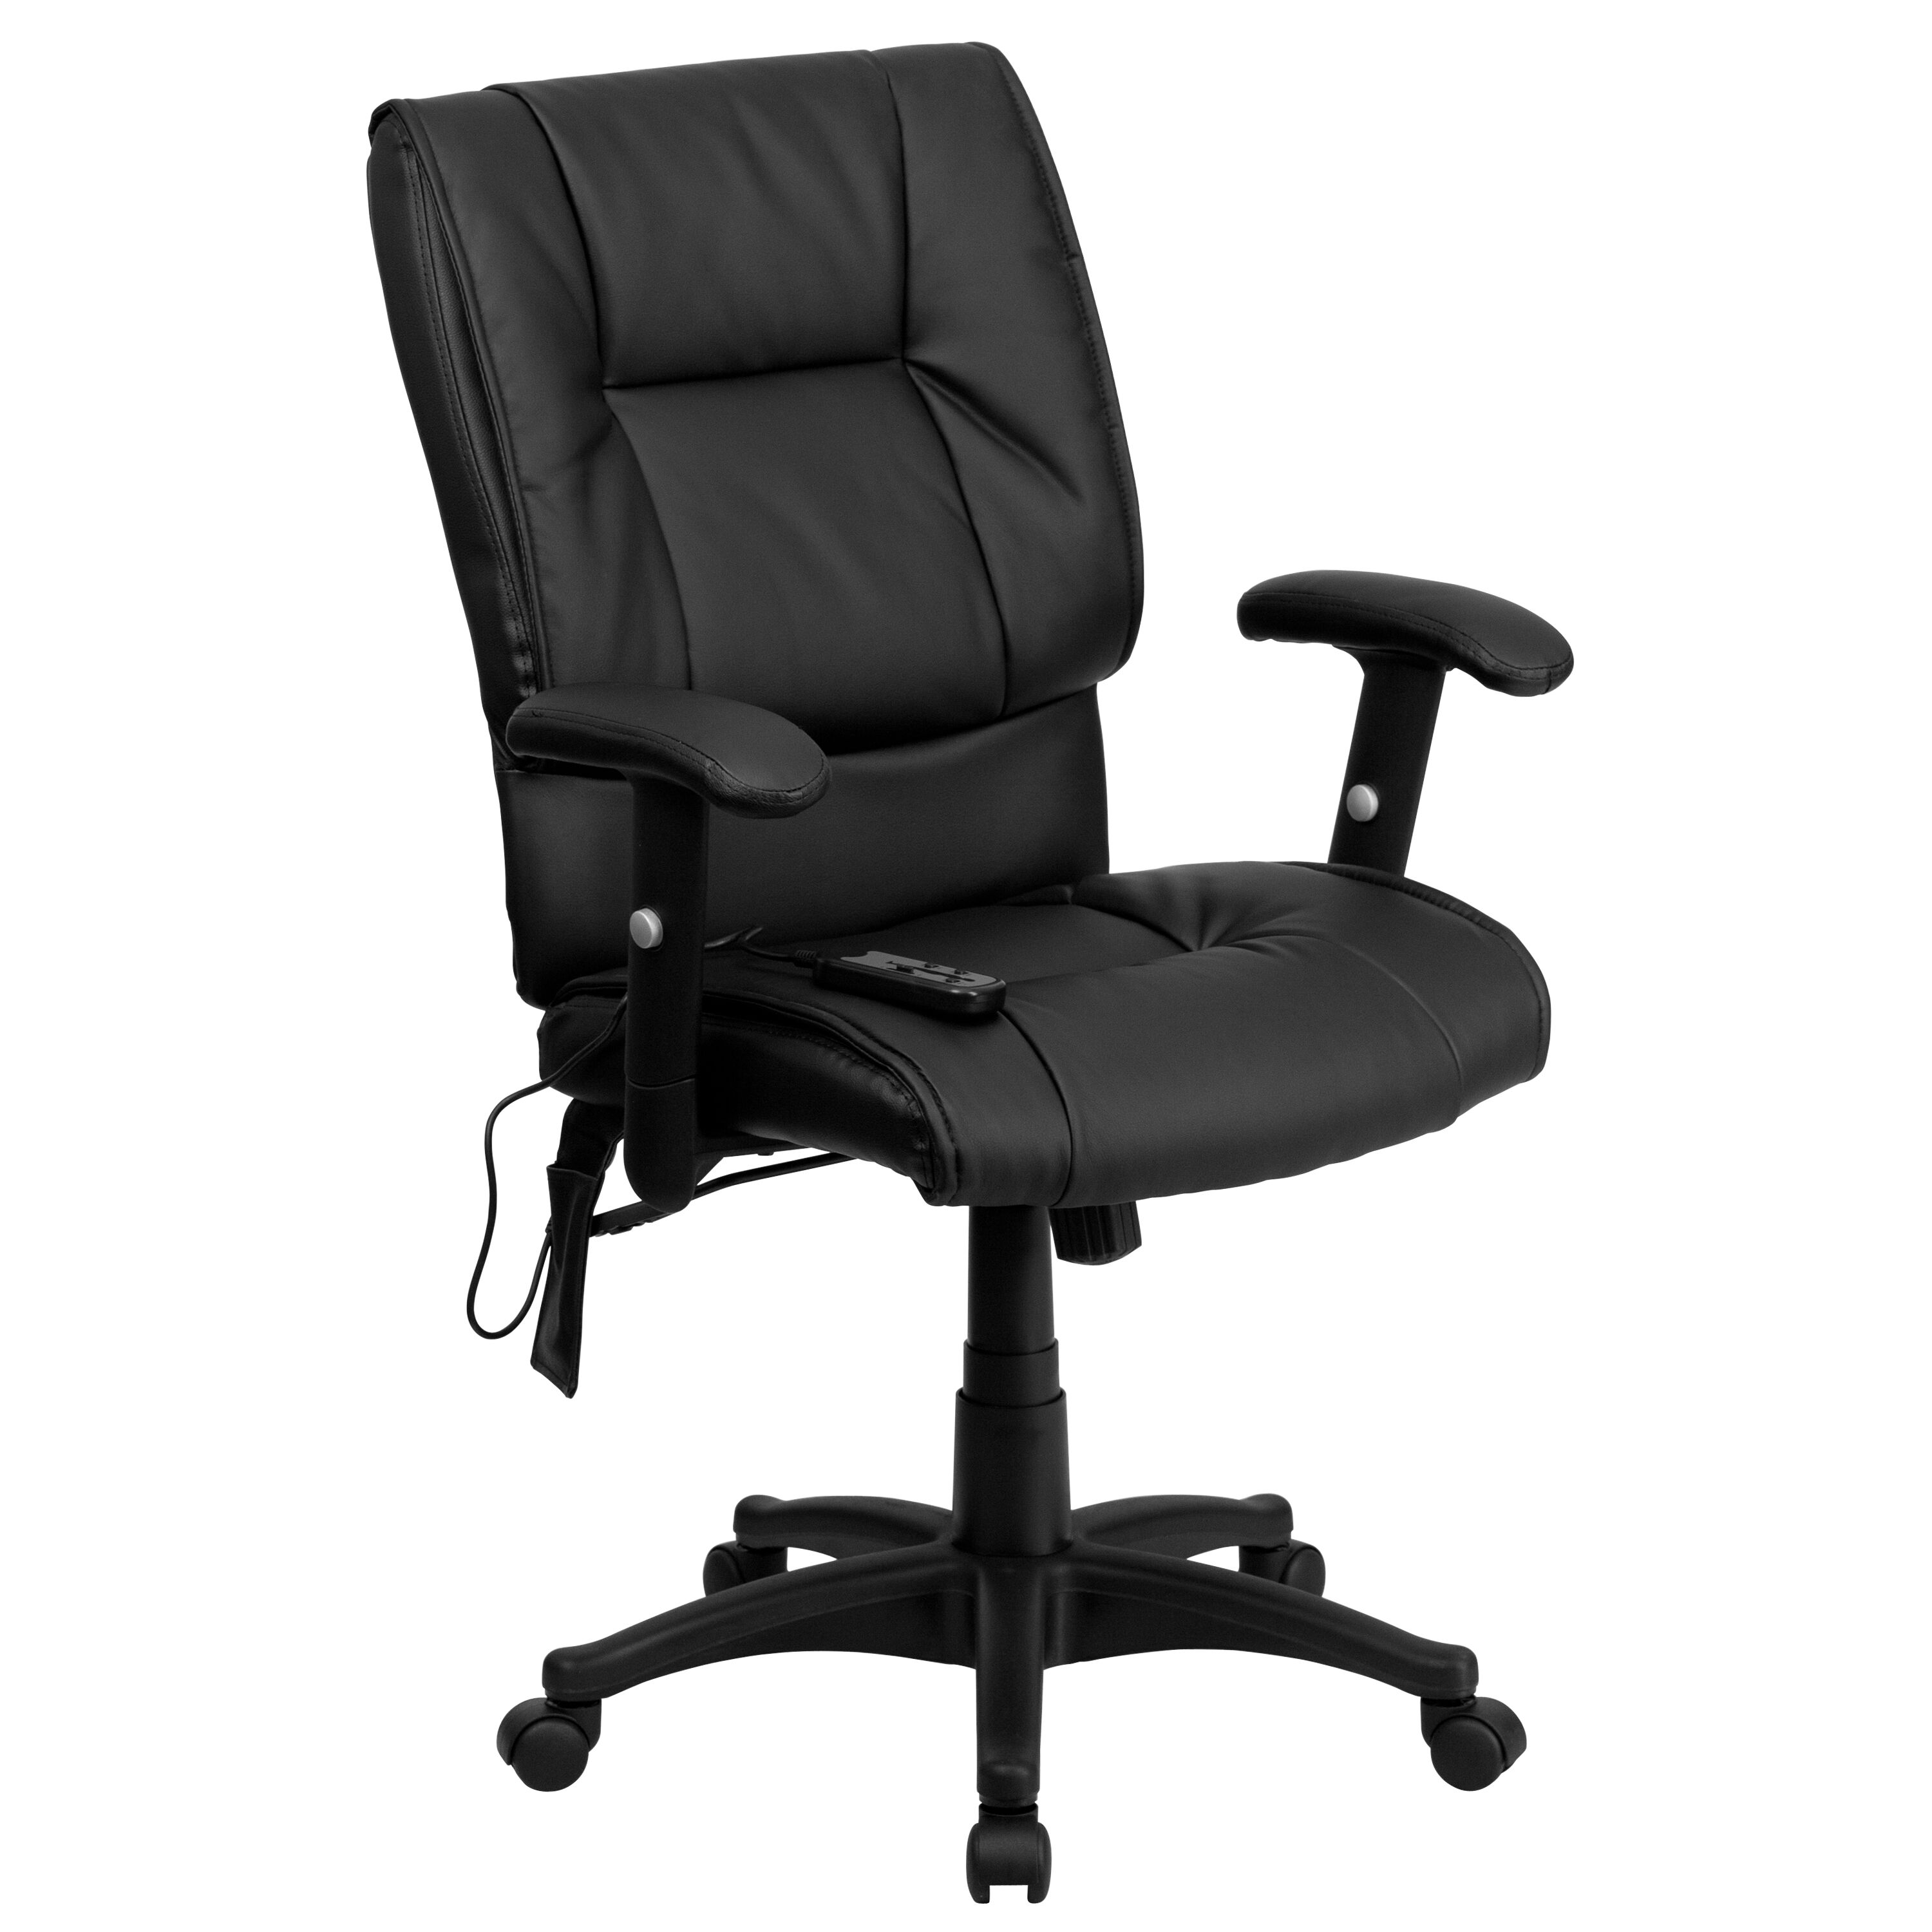 back massage chairs for sale chair seat webbing straps black mid bt 2770p gg bizchair com our ergonomic massaging leather executive swivel office with adjustable arms is